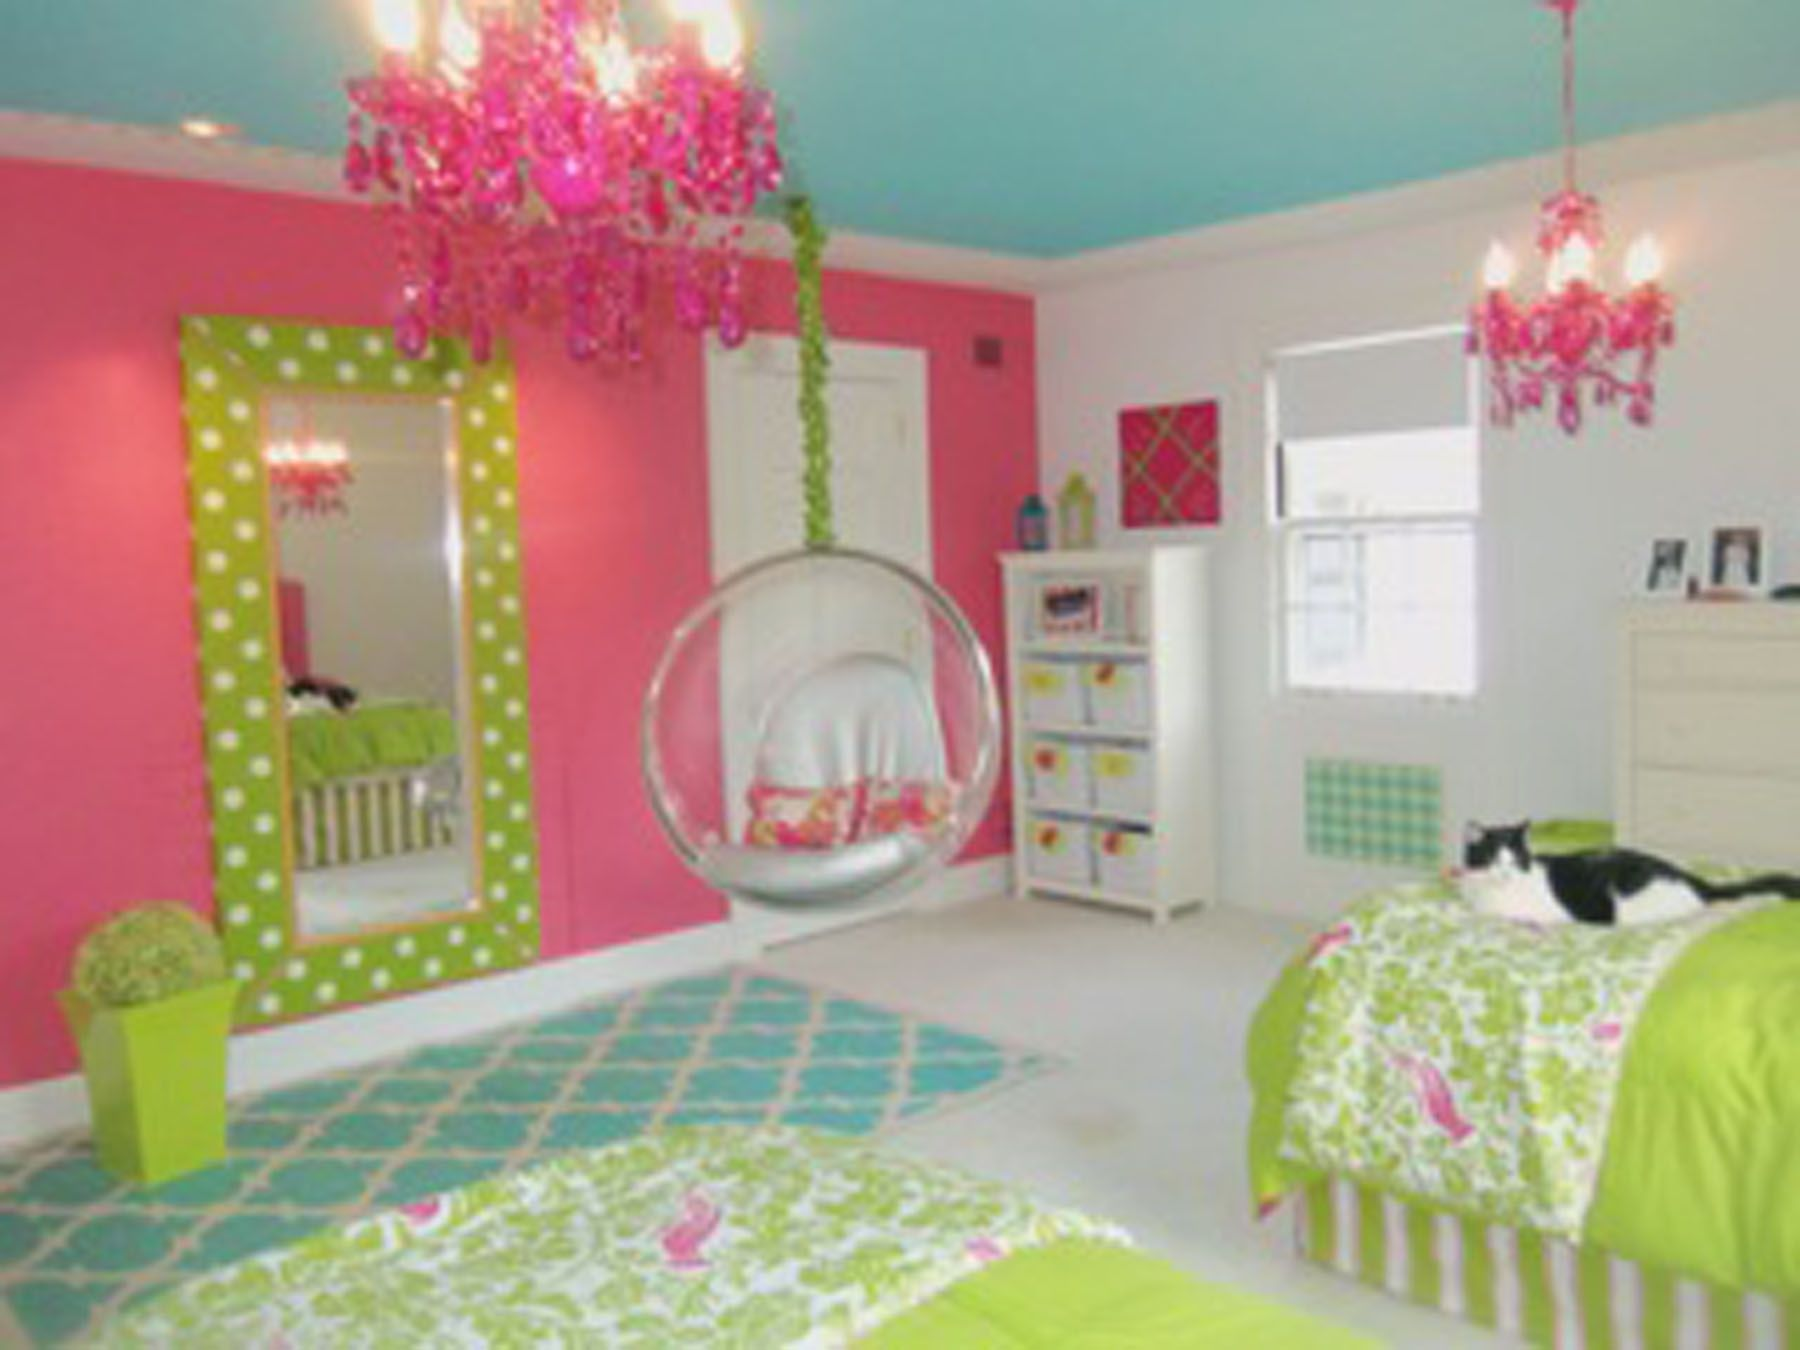 Teenage Girl Room Decor Teenage Room Decor Pinterest Cutie Teen Bedroom Dcor With Wall